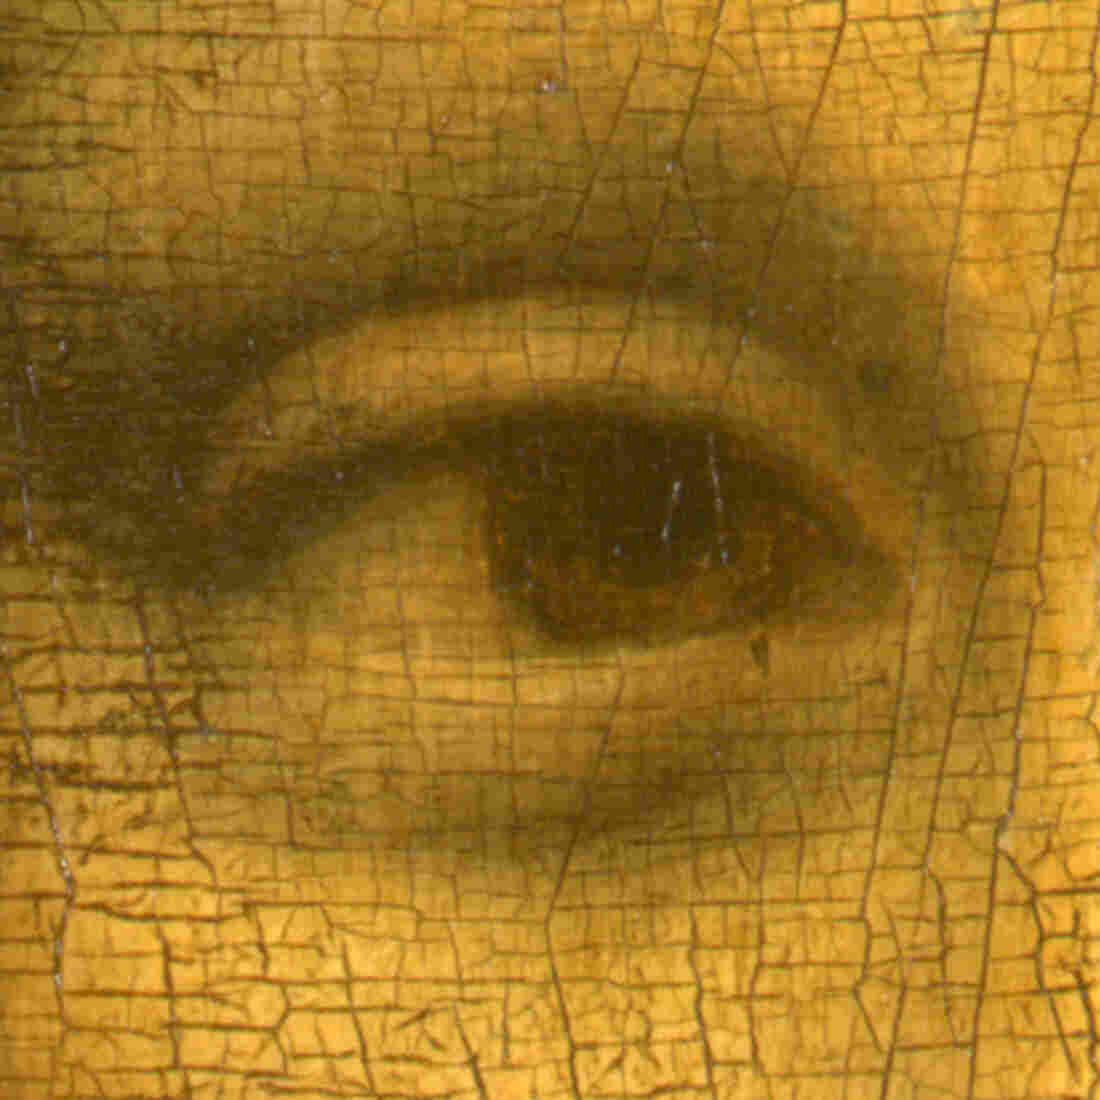 The Theft That Made The 'Mona Lisa' A Masterpiece